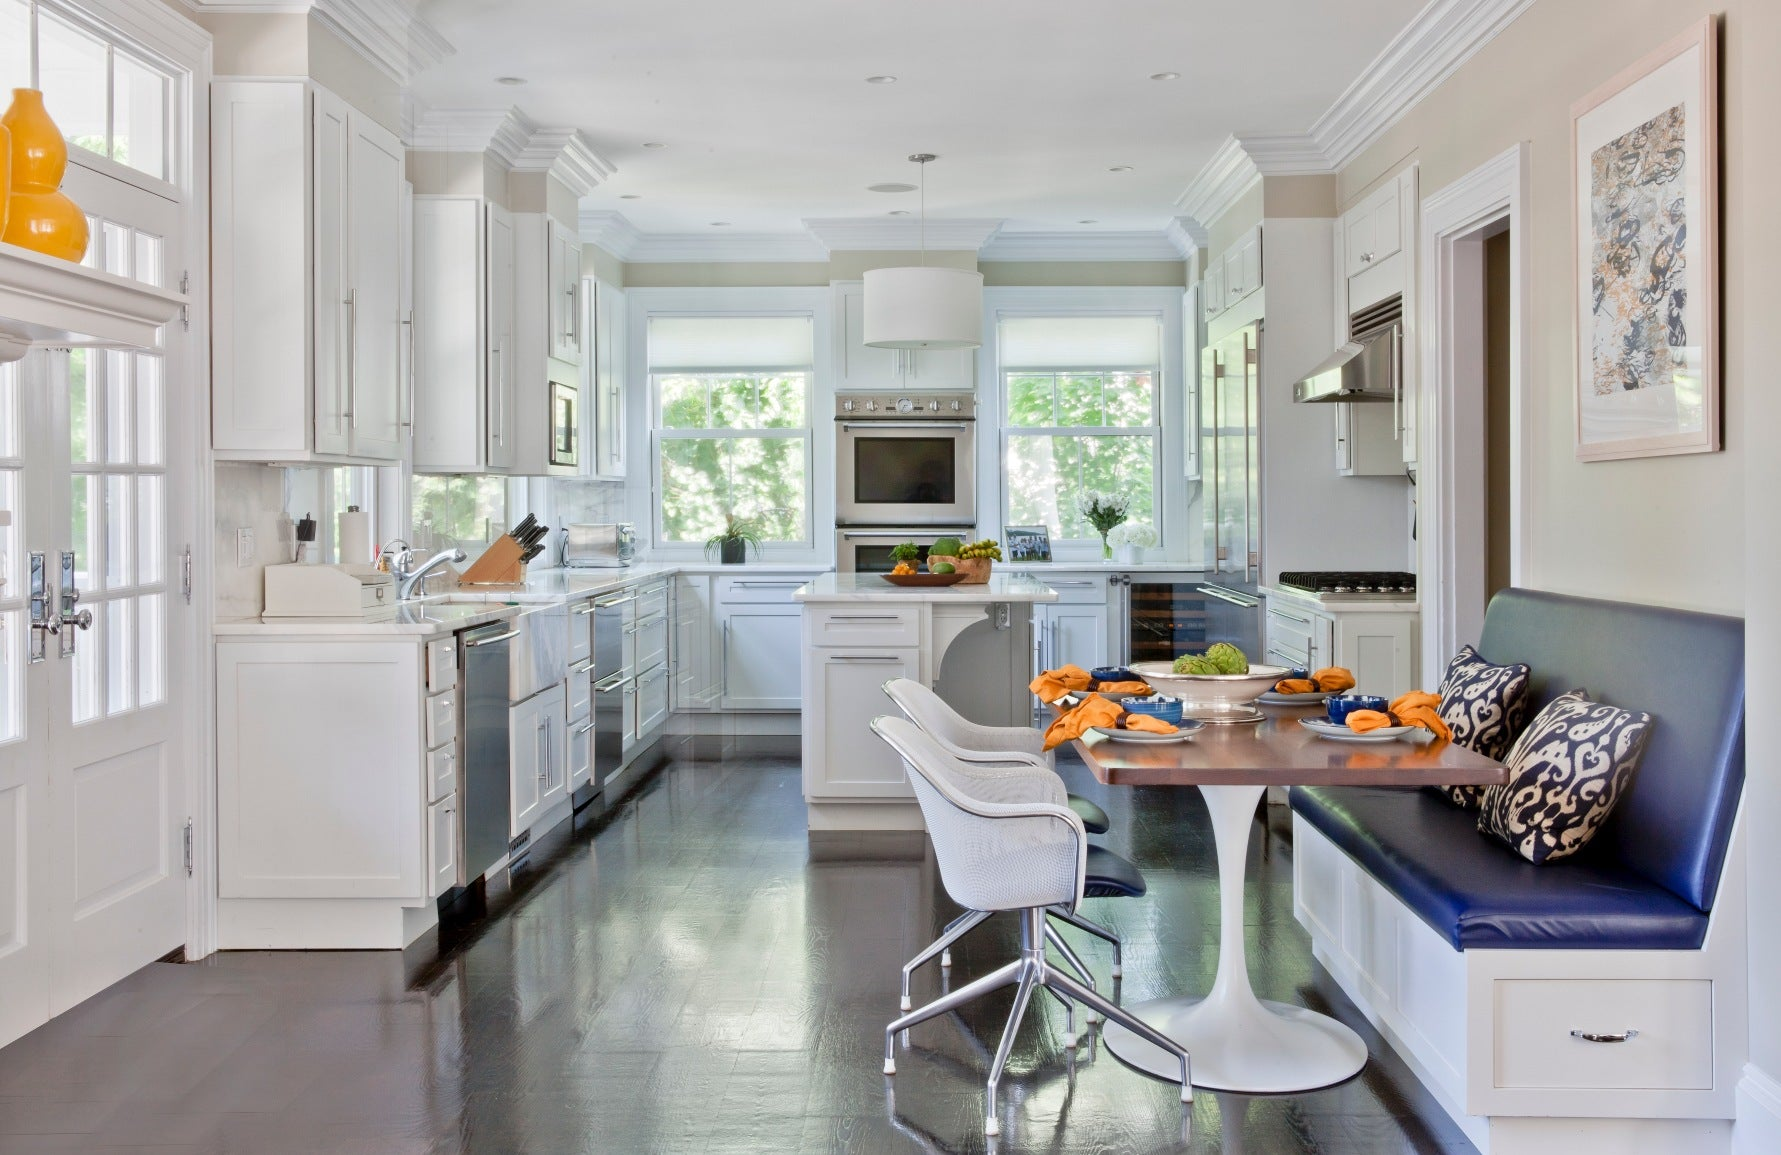 Amazing Kitchen Design Ideas – Nina Farmer - LuxDeco.com Style Guide